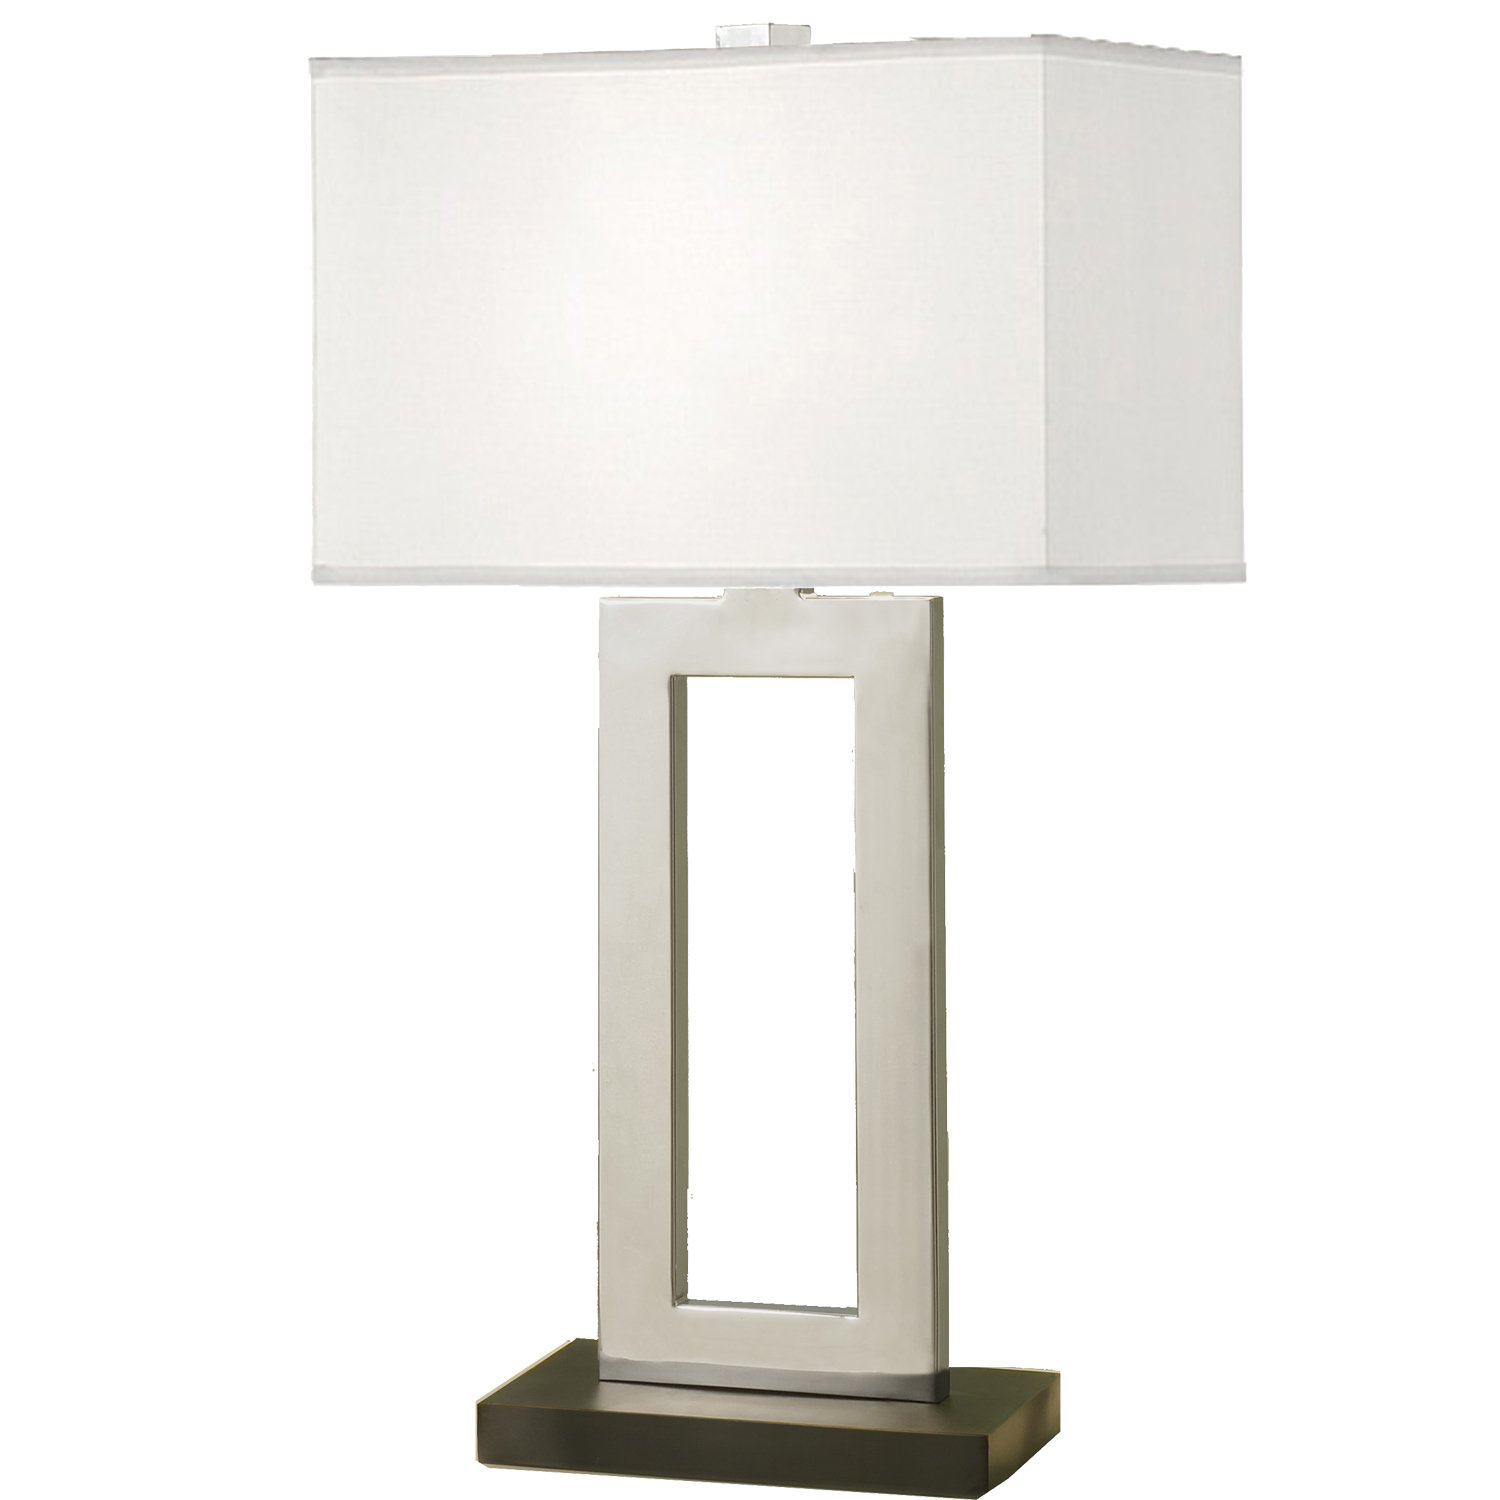 Artiva USA Geometric, Contemporary Design, 29-Inch Chrome & Black Contrast Table Lamp with Rectangular Hardback Shade by Artiva USA